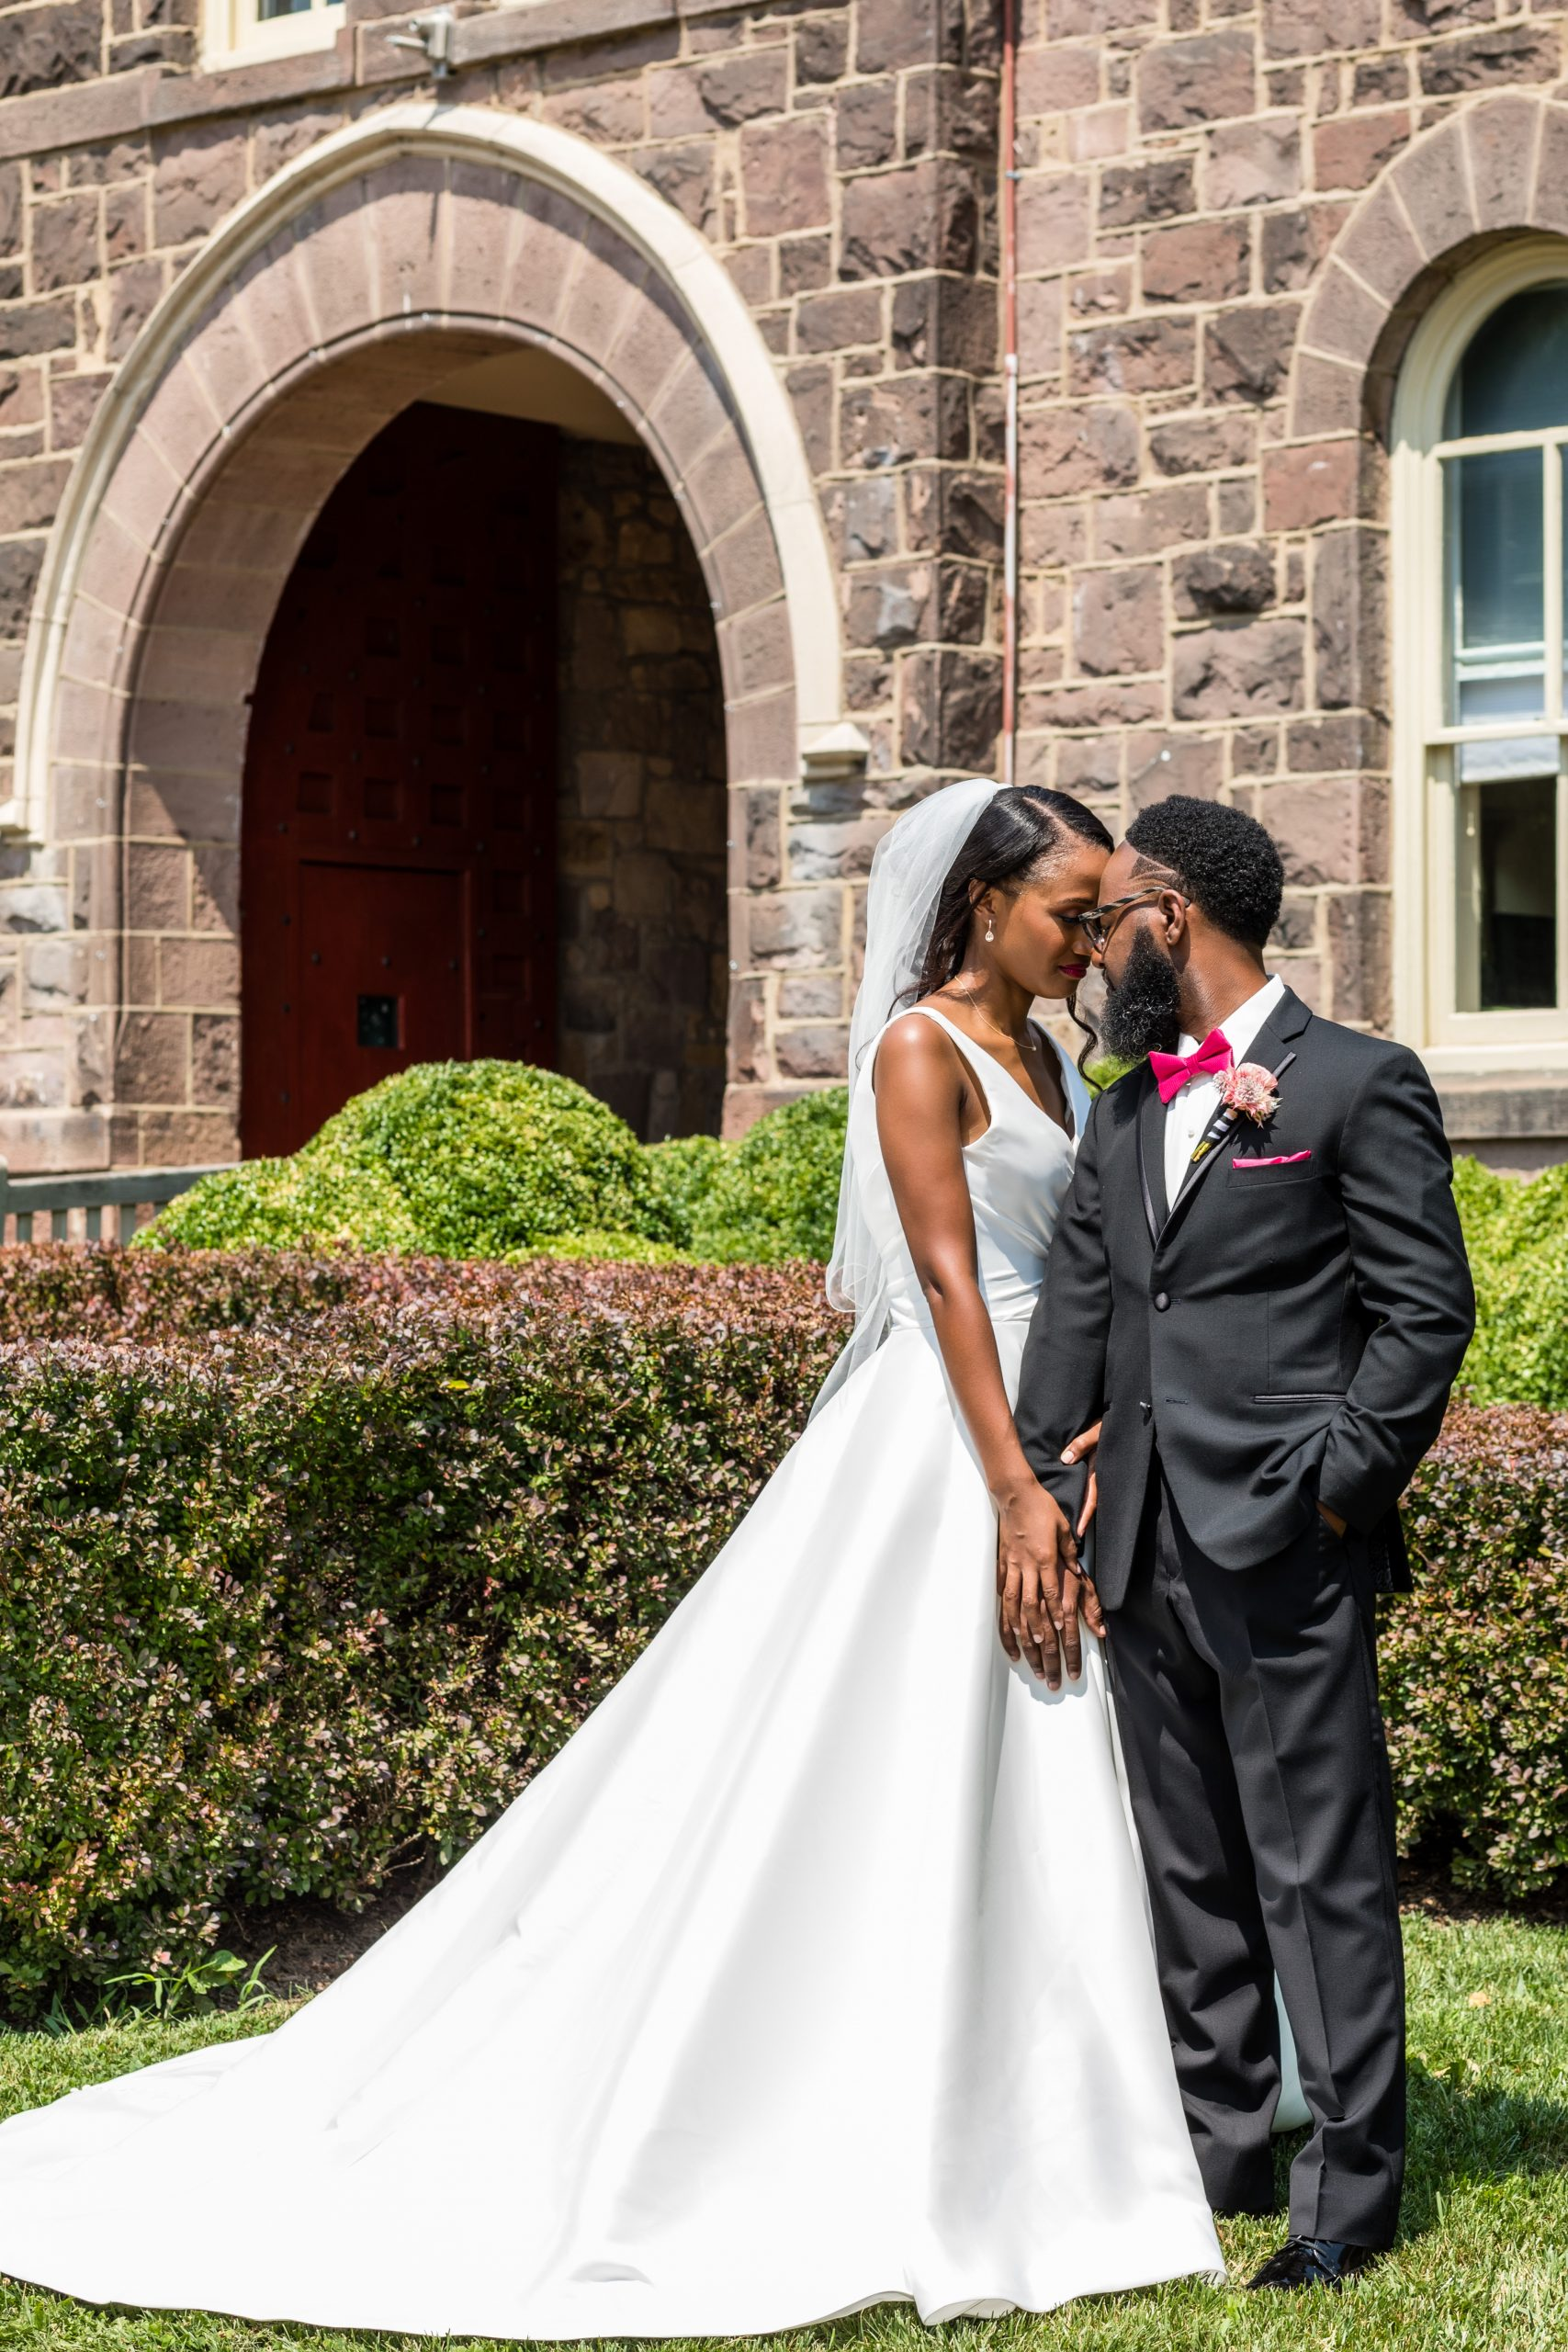 Styled couple utilizing the gardens of Michener Museum styled urban contemporary shoot for Ashley Gerrity Photography this past Summer. Featured on Dream Weddings.